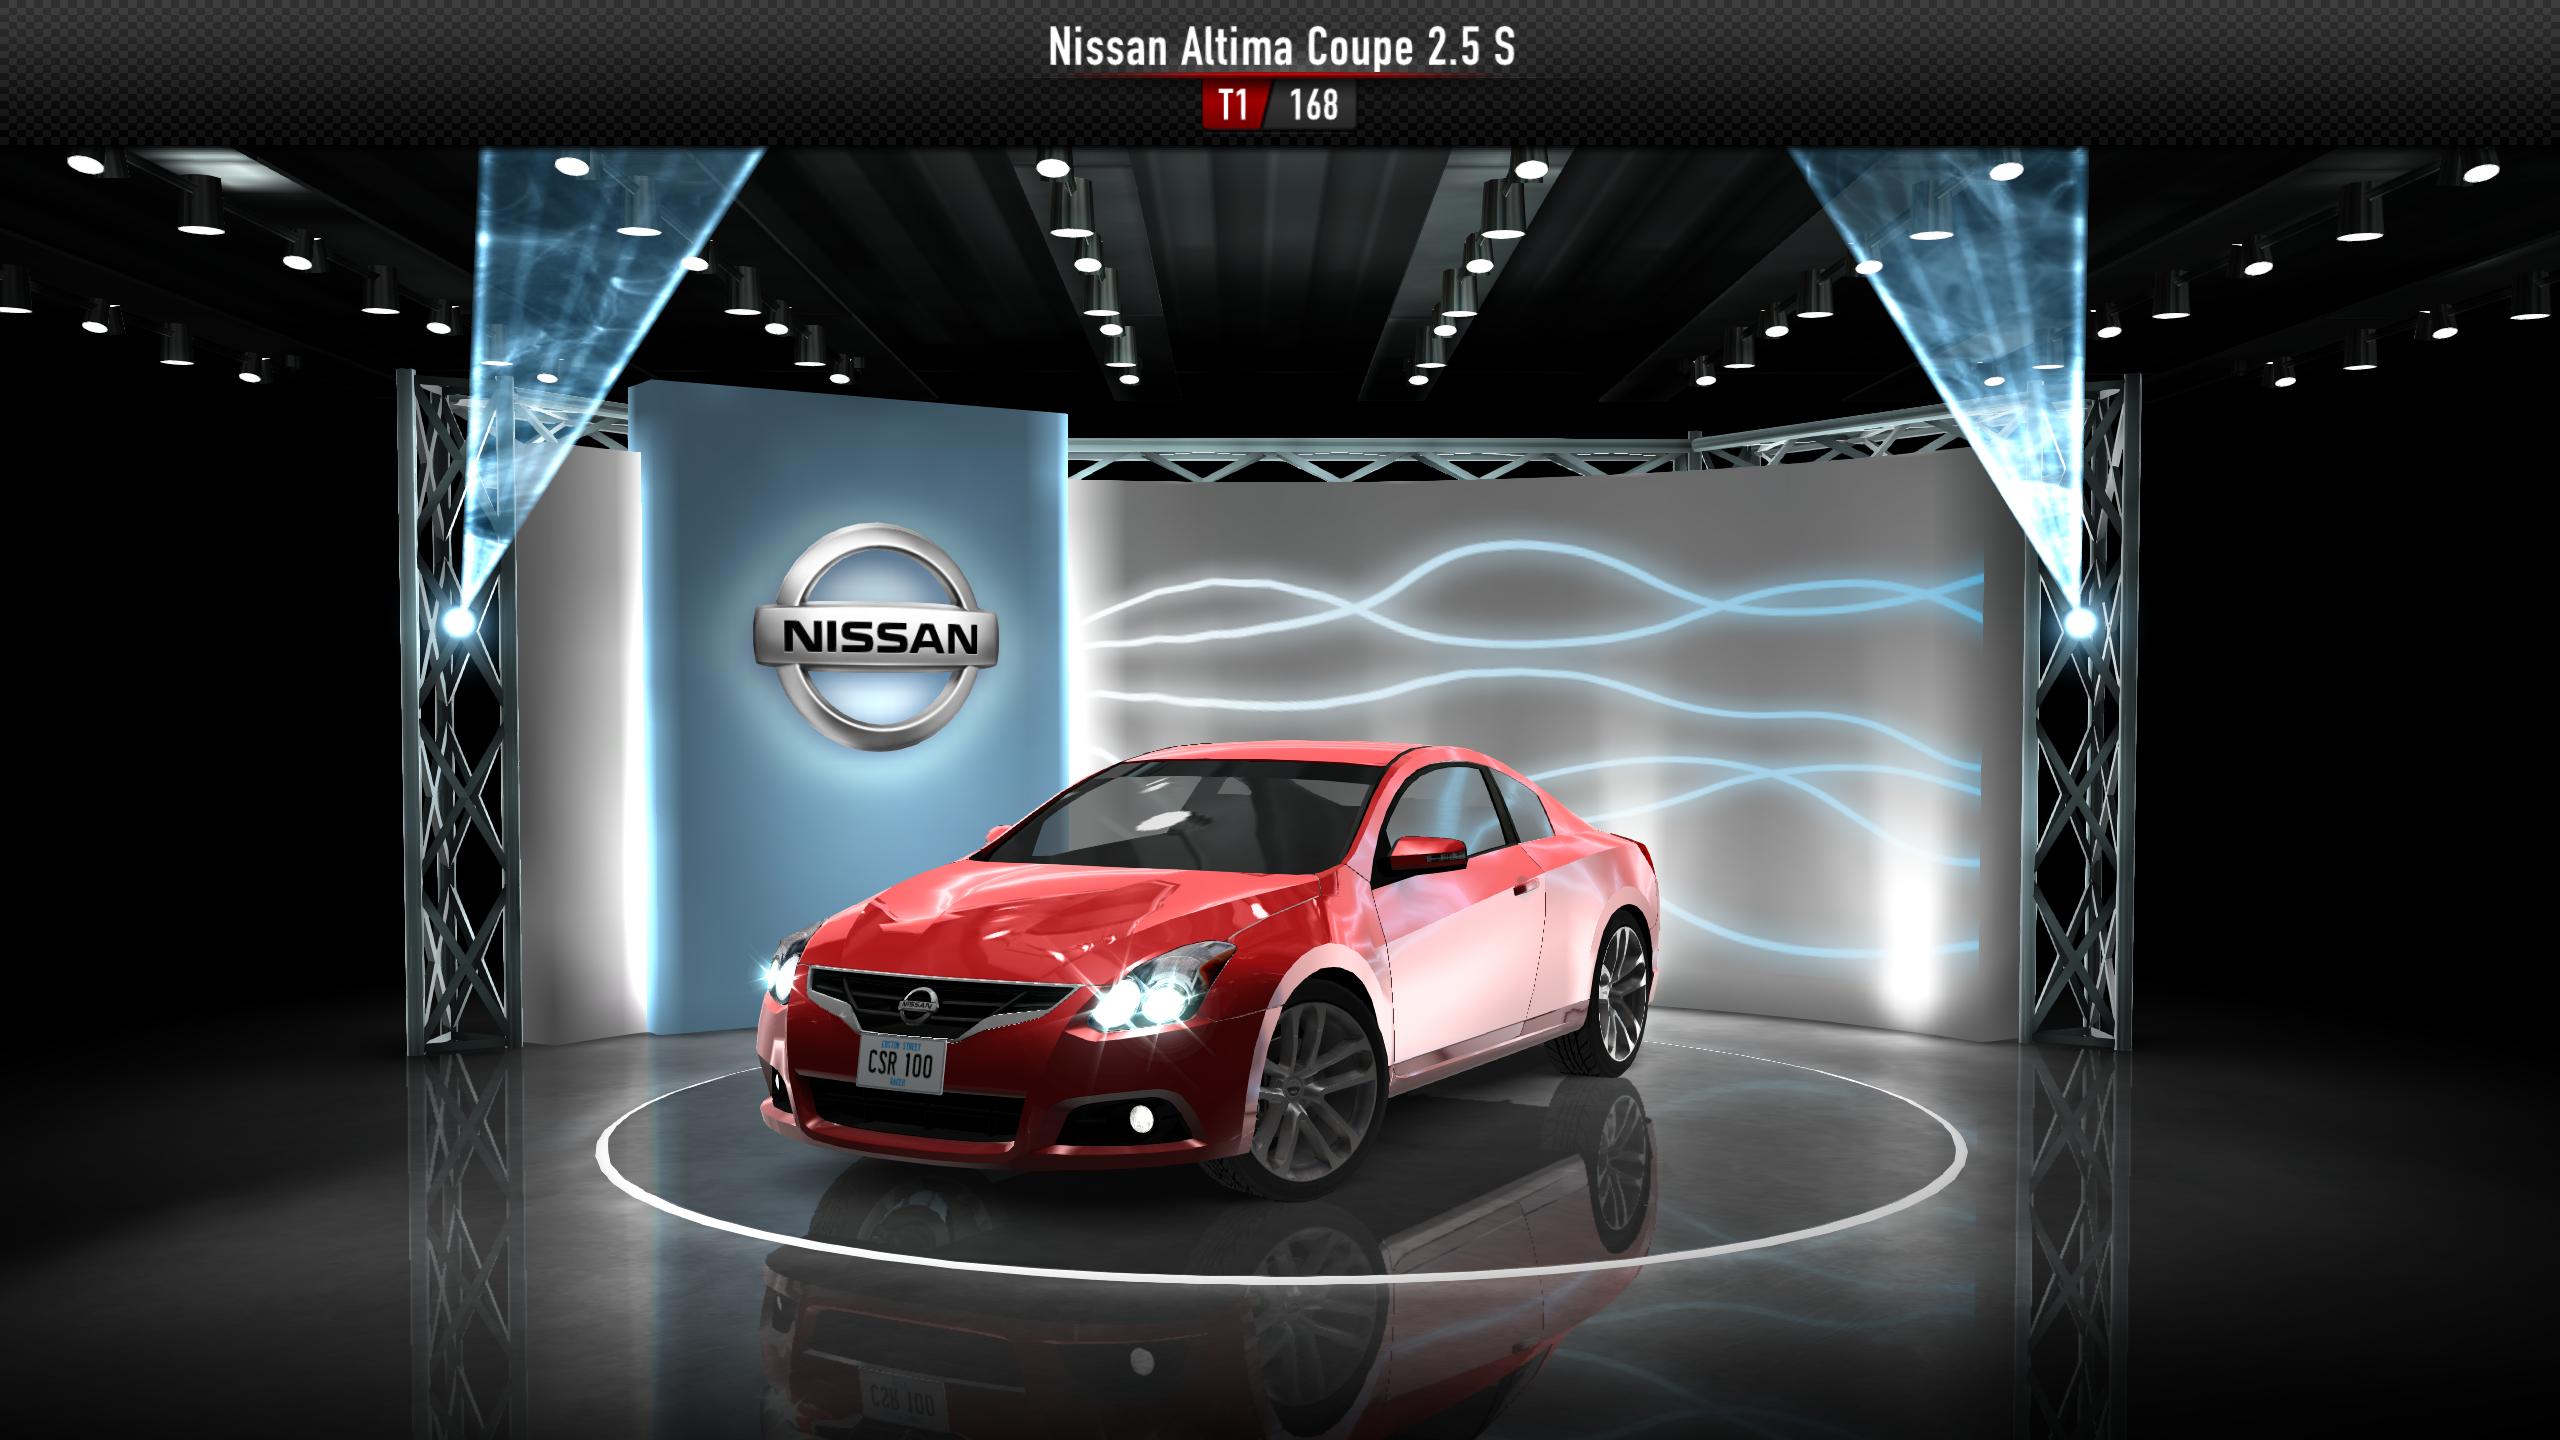 Nissan Altima Coupe 2 5 S Csr Racing Wiki Fandom In some asian countries, it denotes a version of the nissan pulsar. nissan altima coupe 2 5 s csr racing